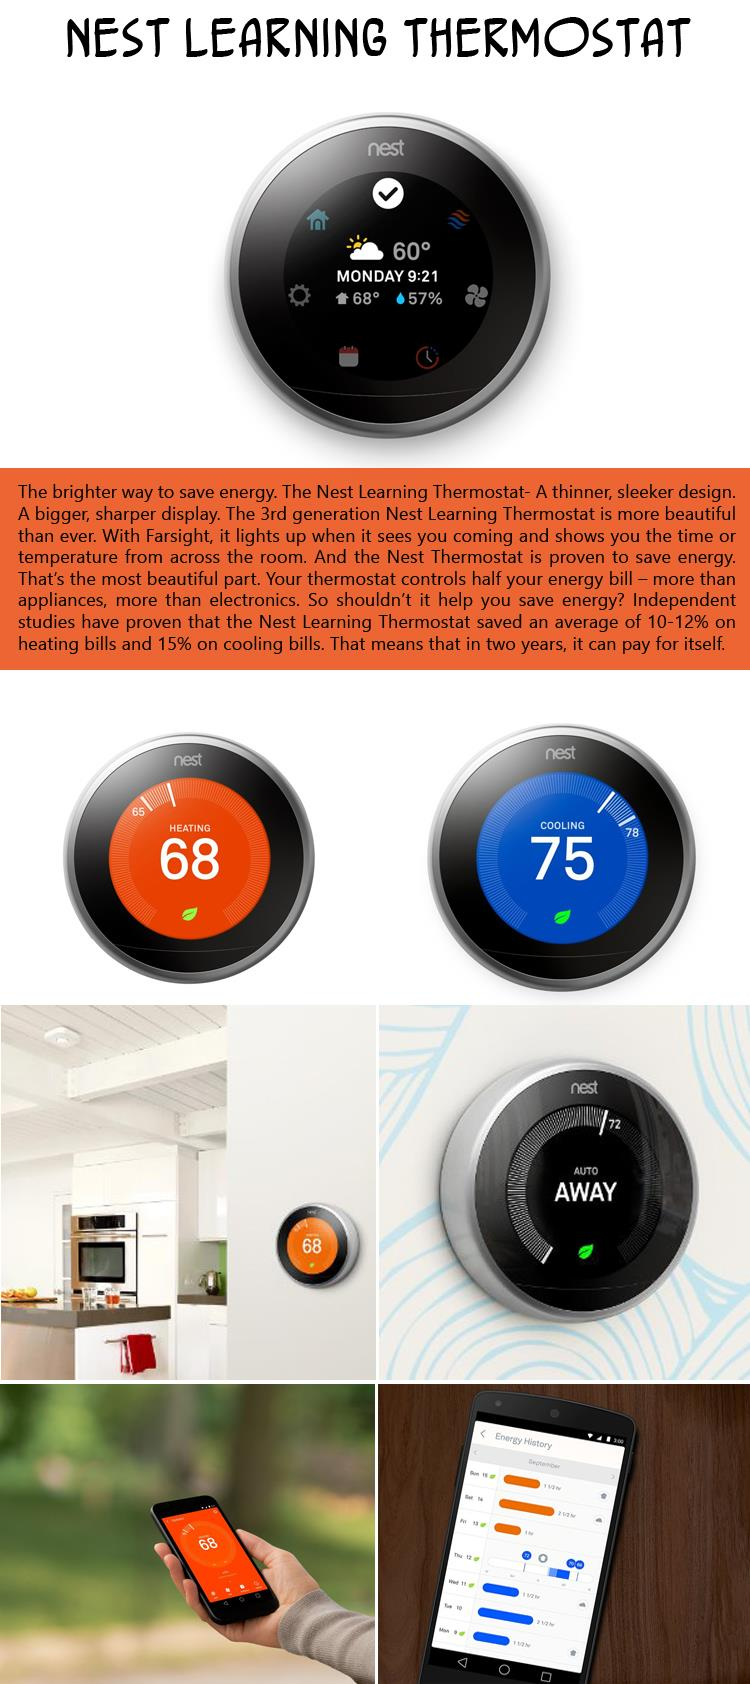 2 Nest Learning Thermostat